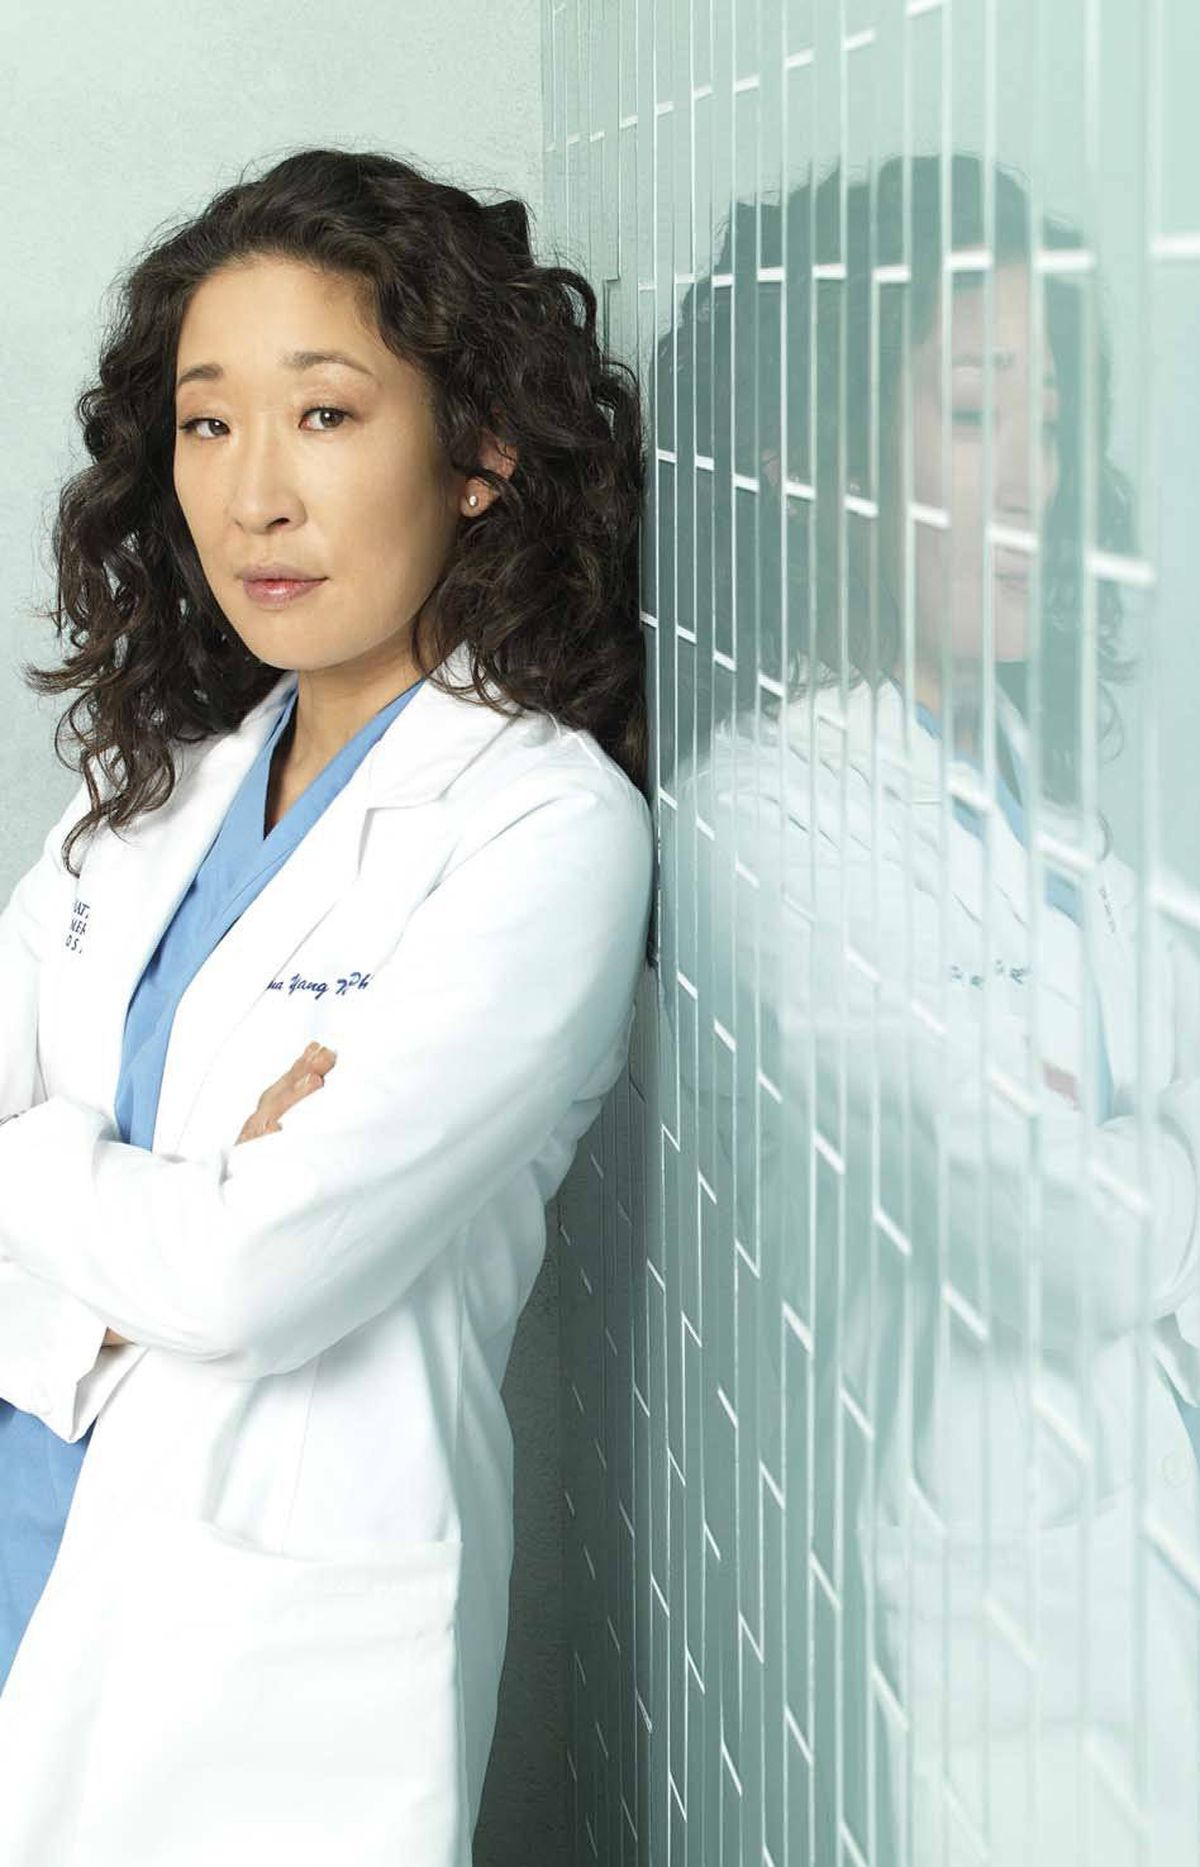 DRAMA Grey's Anatomy ABC, CTV, 9 p.m. Were you aware that nearly every episode in this popular medical drama, currently in its eighth season, is titled after a pop song? So far, this season has produced episodes airing under the banner of Poker Face and All You Need Is Love. Tonight's show is titled The Lion Sleeps Tonight, which is apt since the storyline involves a lion breaking loose in Seattle, which leaves the earnest medics working the emergency room at Seattle Grace Hospital scrambling. In soapier plot details, Meredith (Ellen Pompeo) becomes the support system for Cristina (Sandra Oh) when the latter fights with her beau; Callie (Sara Ramirez) grills Arizona (Jessica Capshaw) about her romantic past; and Teddy (Kim Raver) forces herself to finally deal with Henry's death.